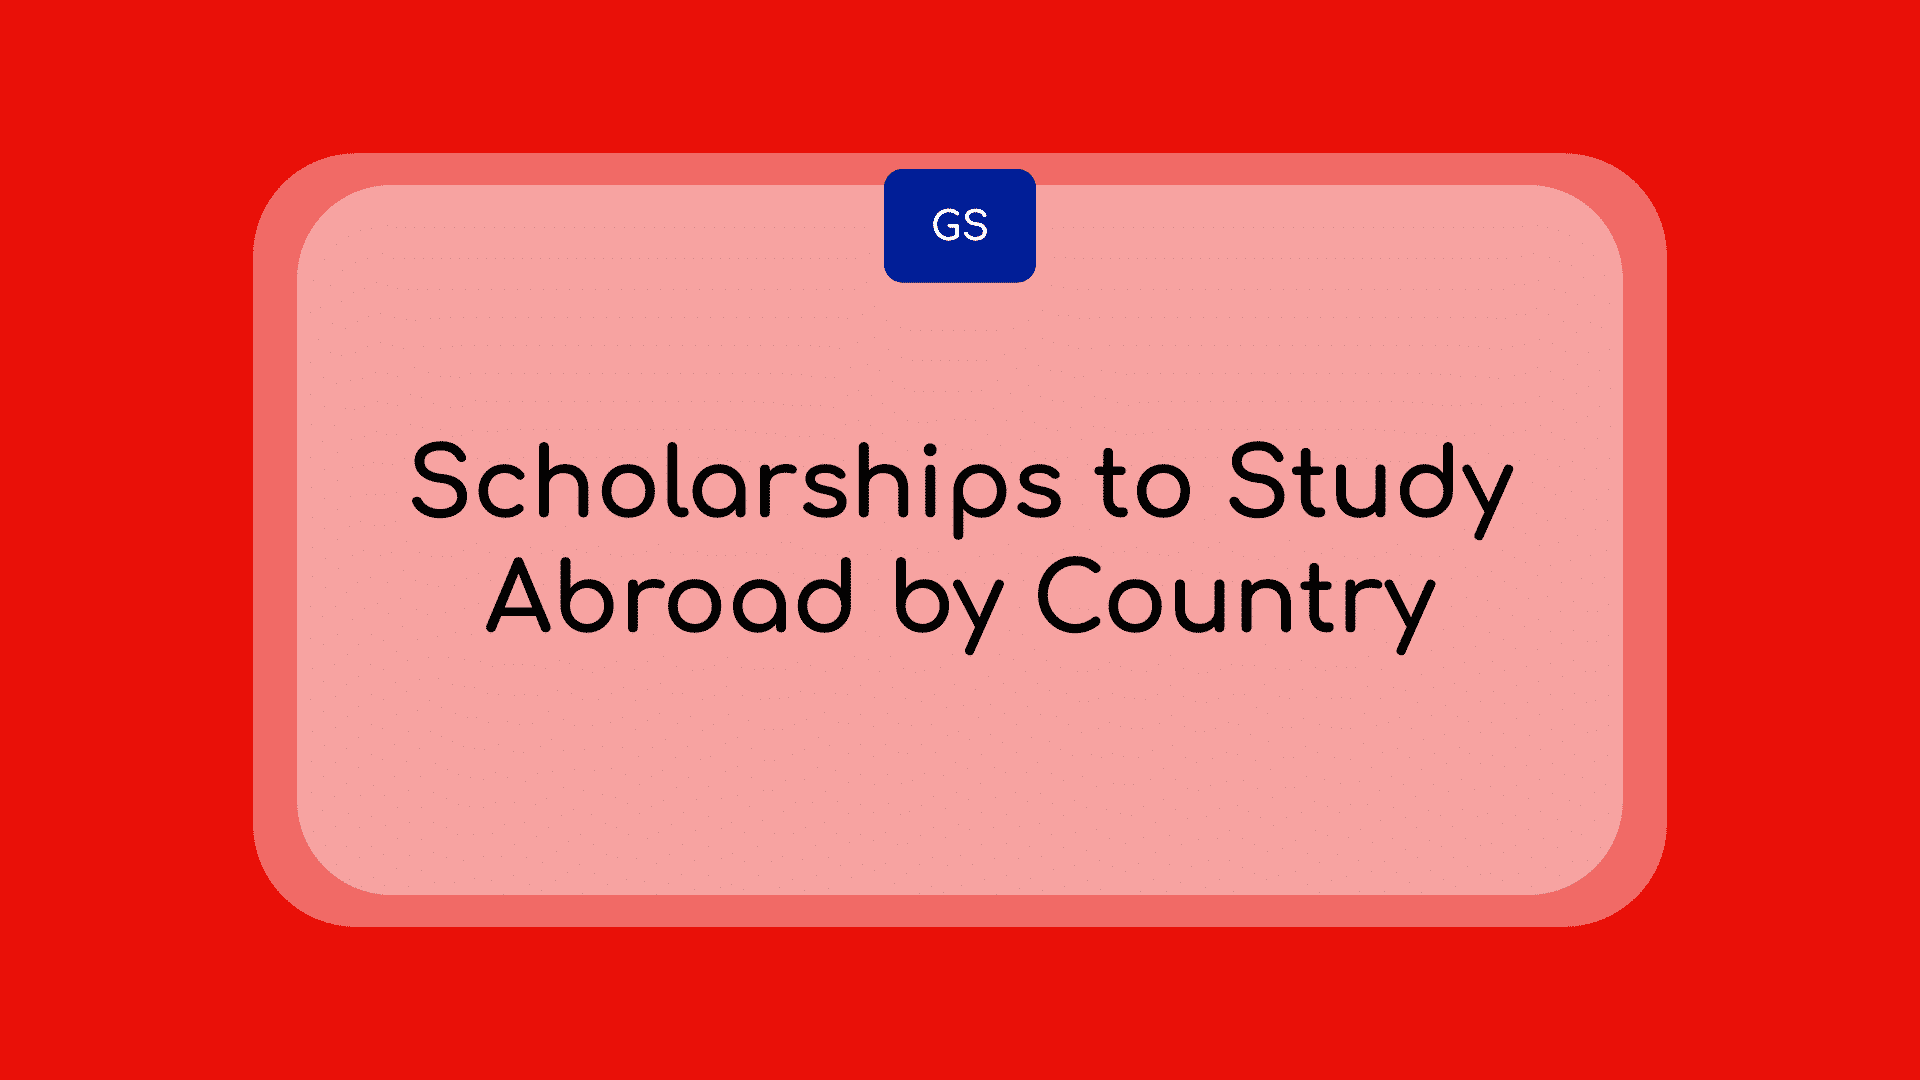 Scholarships to study abroad in 2020-2021 by country